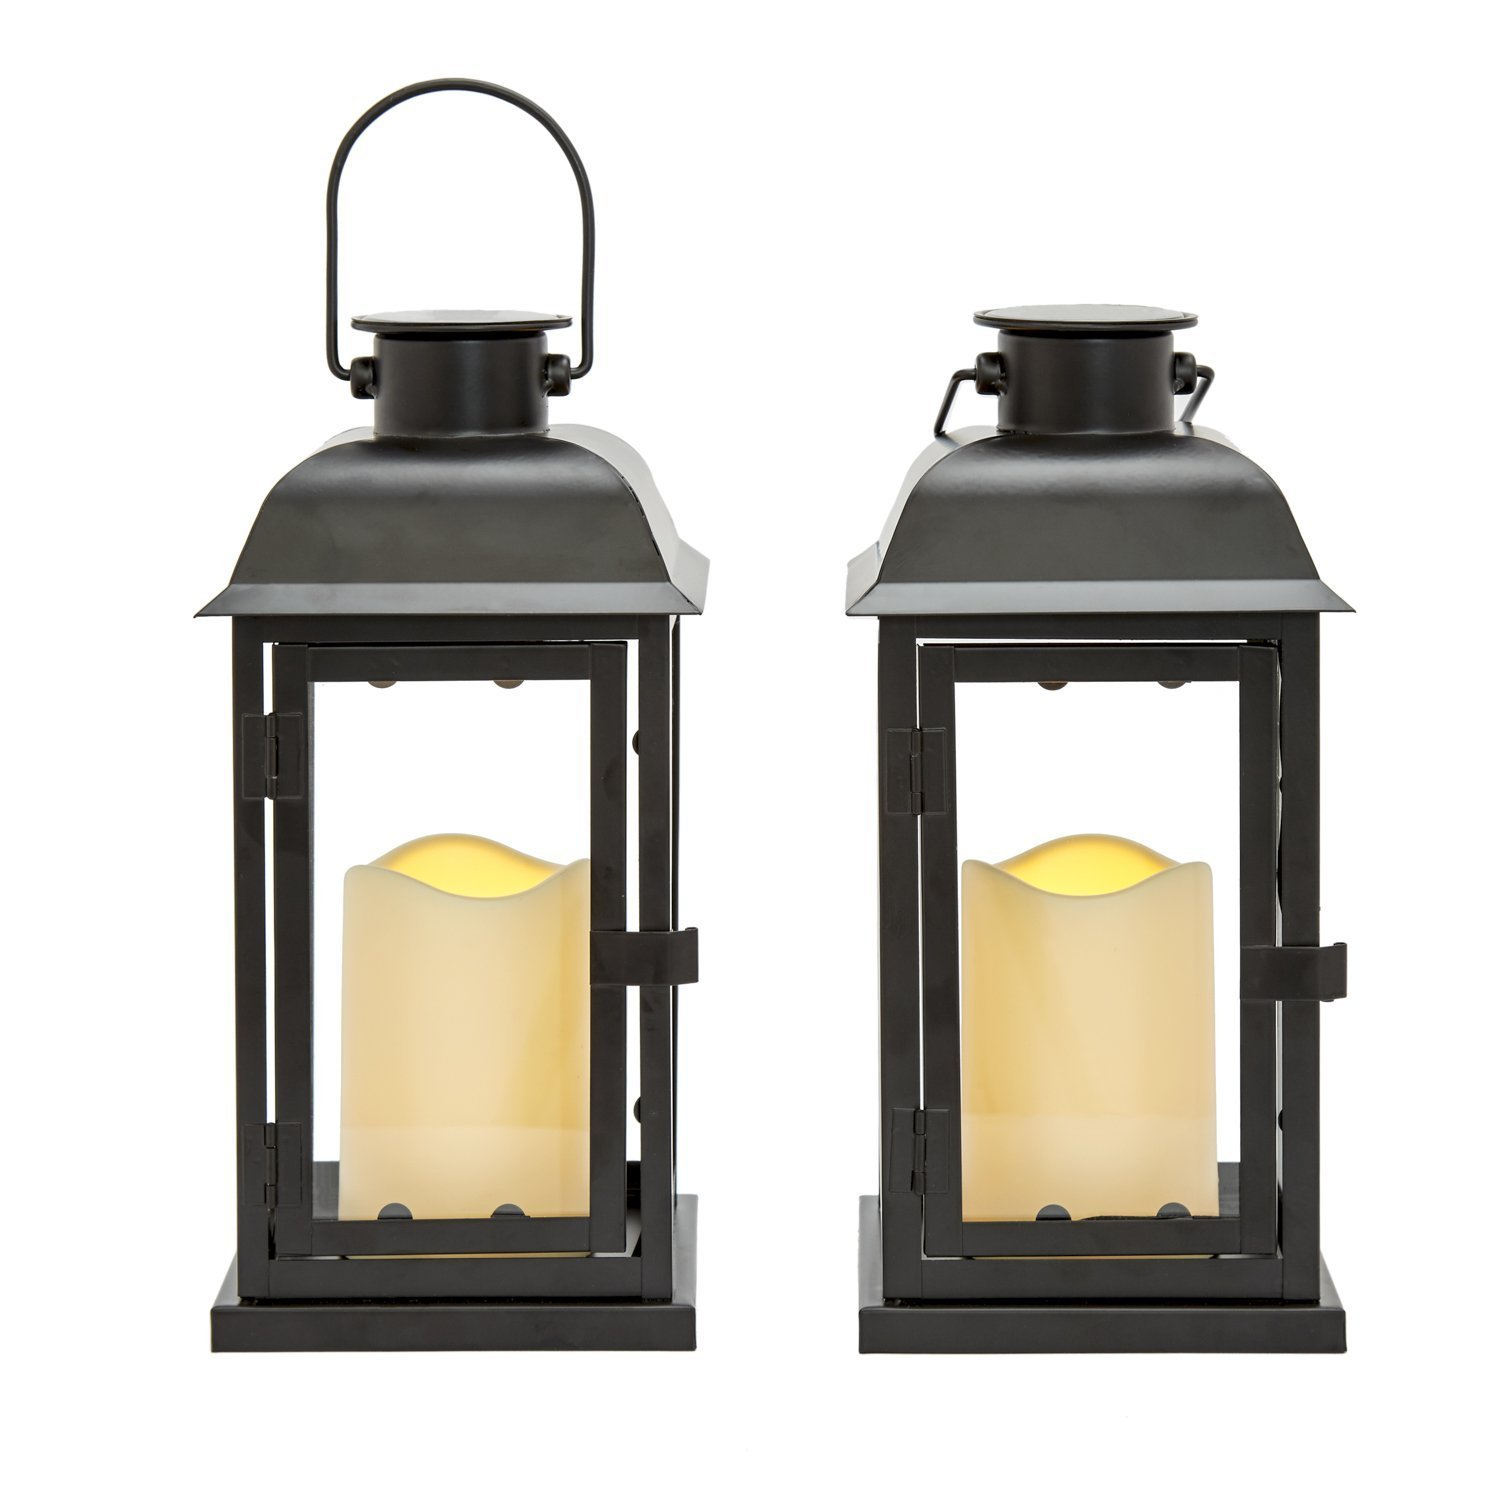 Outdoor Black Solar Candle Lanterns, 11'' Height, Warm White LEDs, Dusk to Dawn Technology, Batteries Included - Set of 2